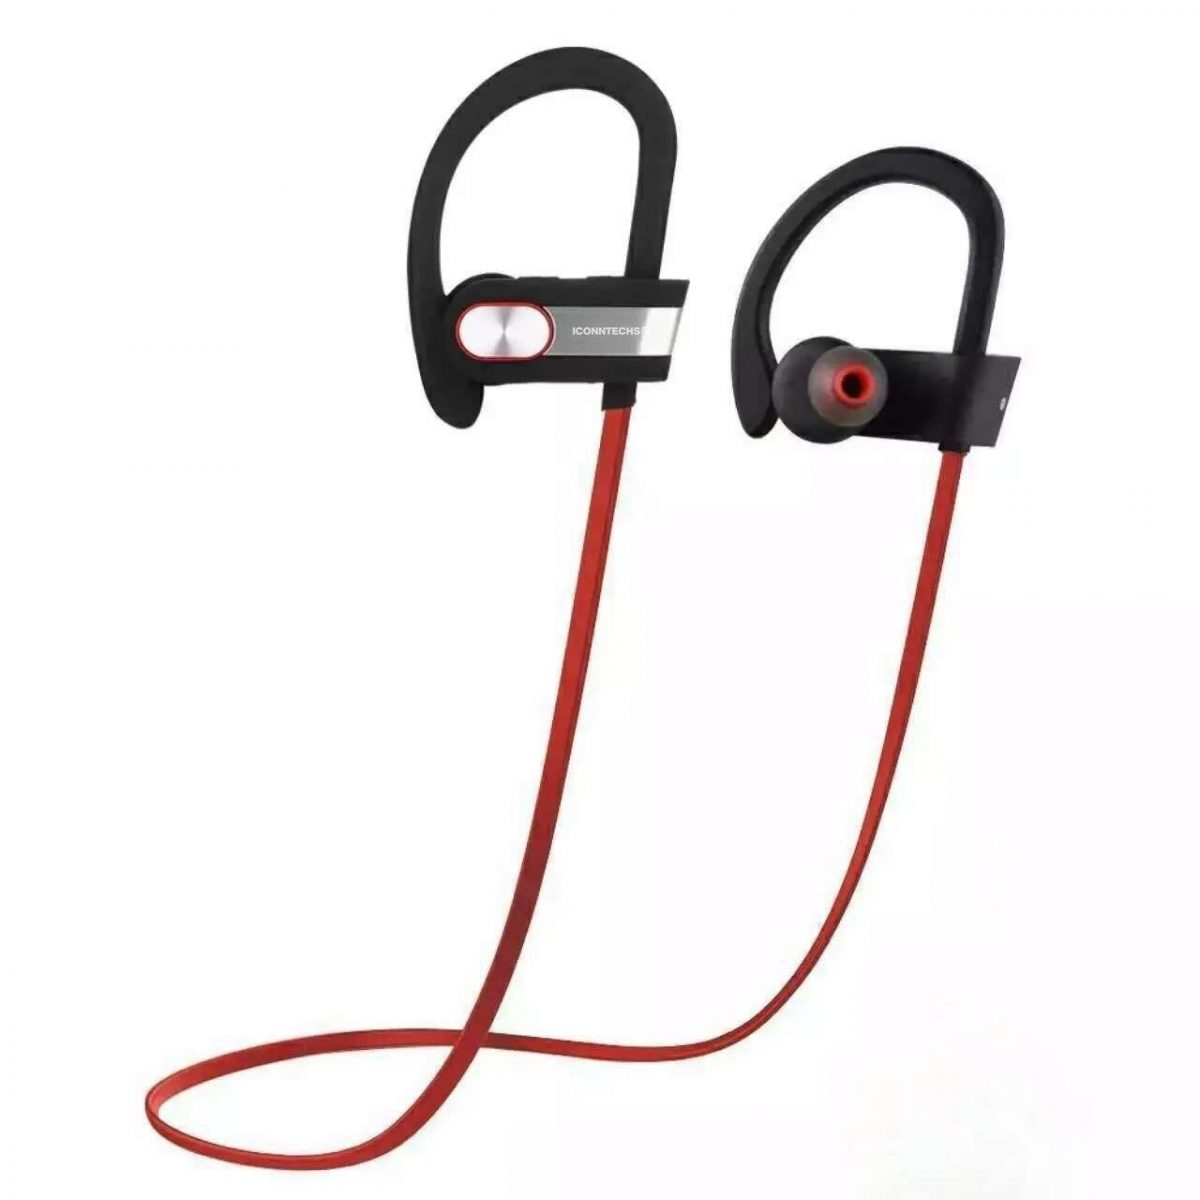 ICONNTECHS IT cuffie bluetooth amazon offerta codice sconto 01